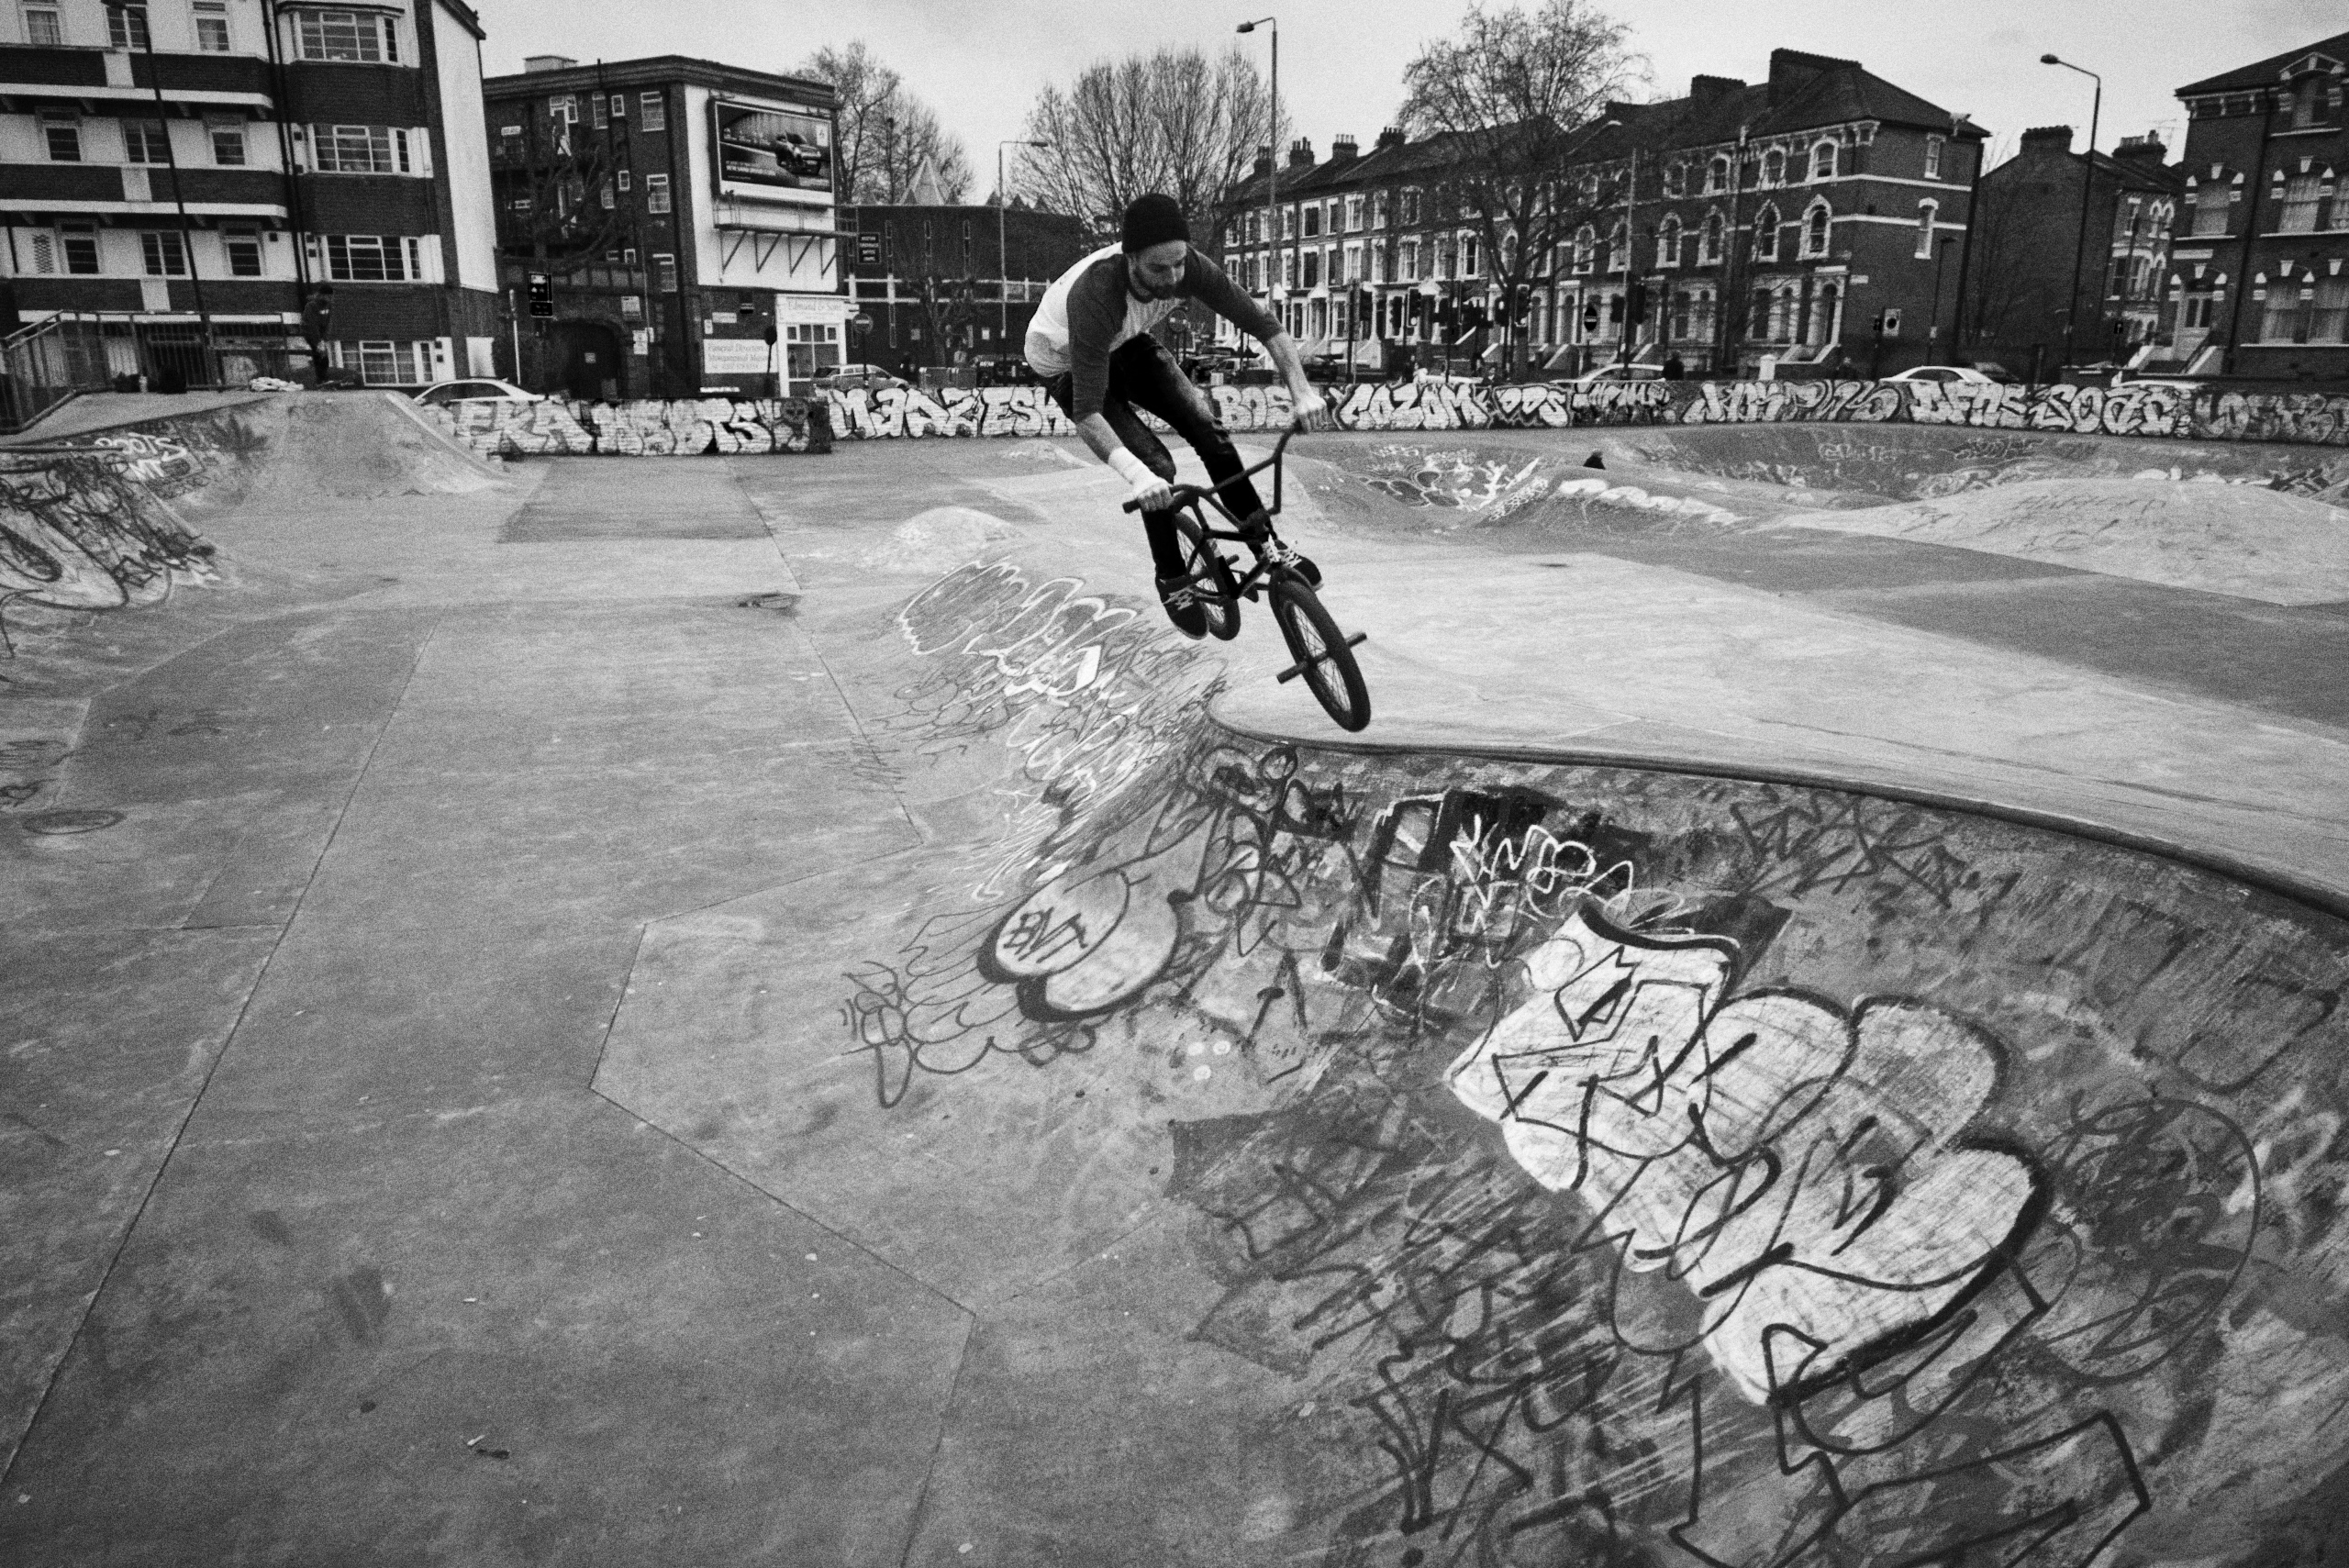 Brixton-skate-park-Matt-Stansfield-Lifestyle-Youth-Culture_5